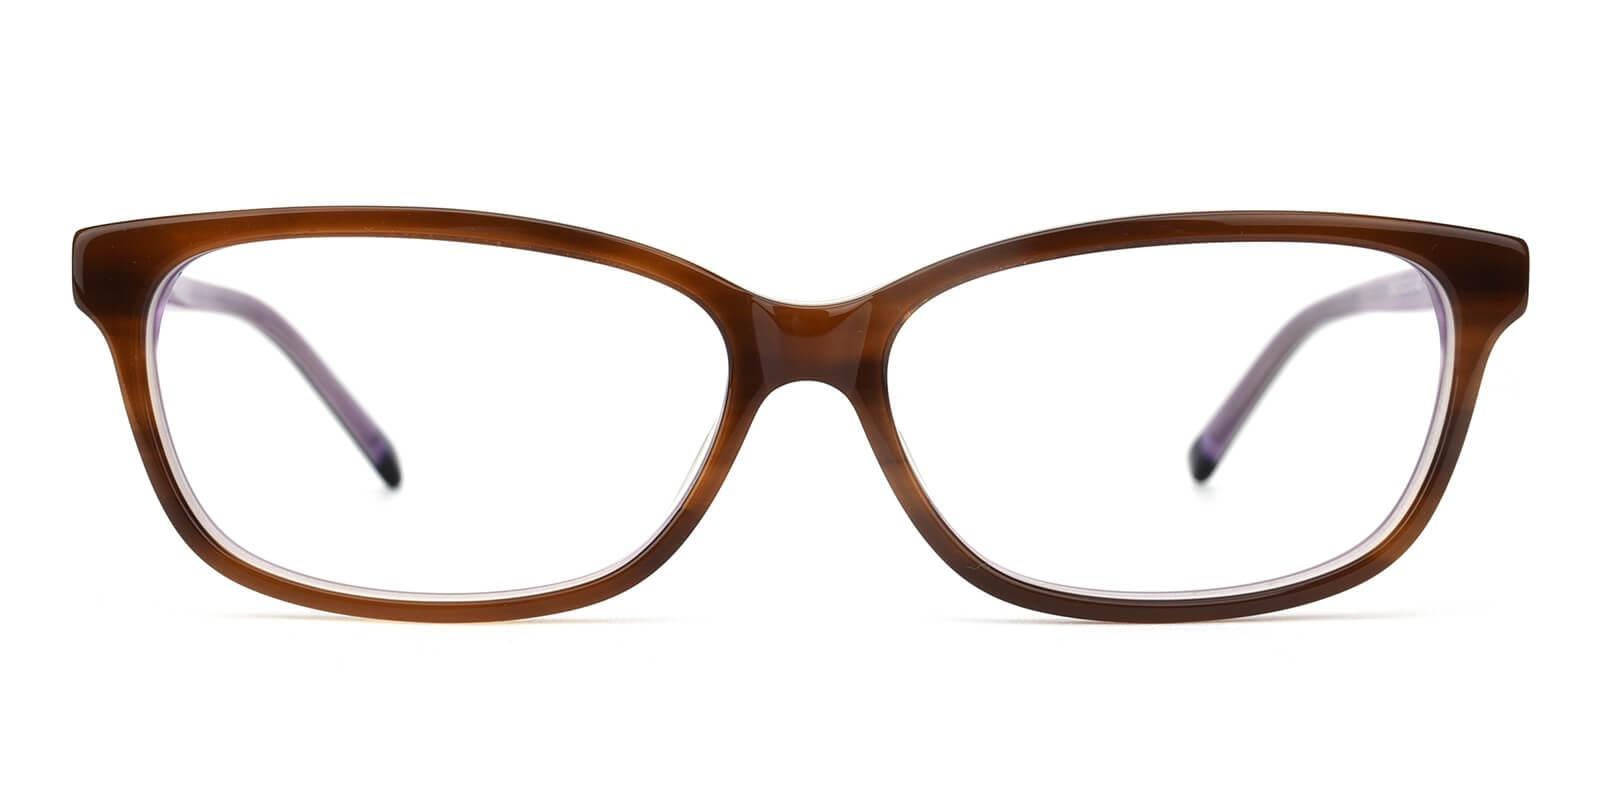 Zion-Brown-Cat-Acetate-Eyeglasses-additional2